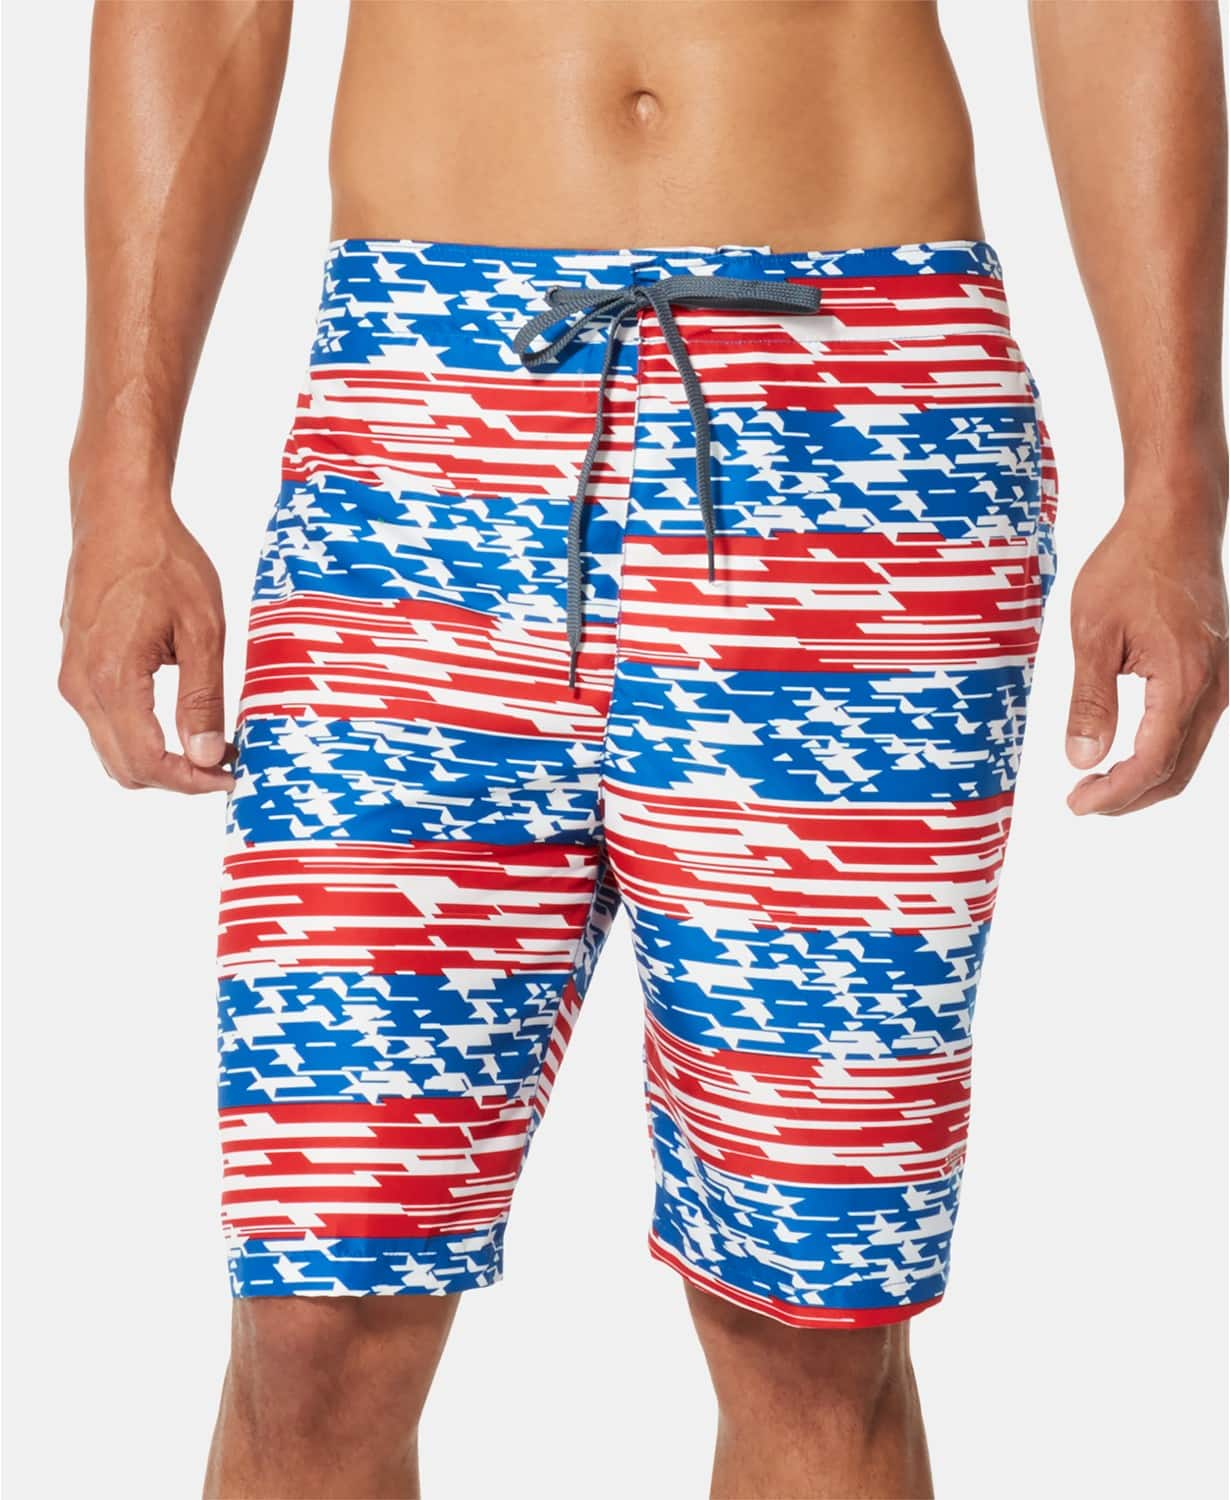 "Speedo Men's American Flag Stripe TurboDri 9"" E-Board Swim Trunks $8, Columbia Men's PFG Super Backcast Water Short $10, More + free ship to store at Macys"